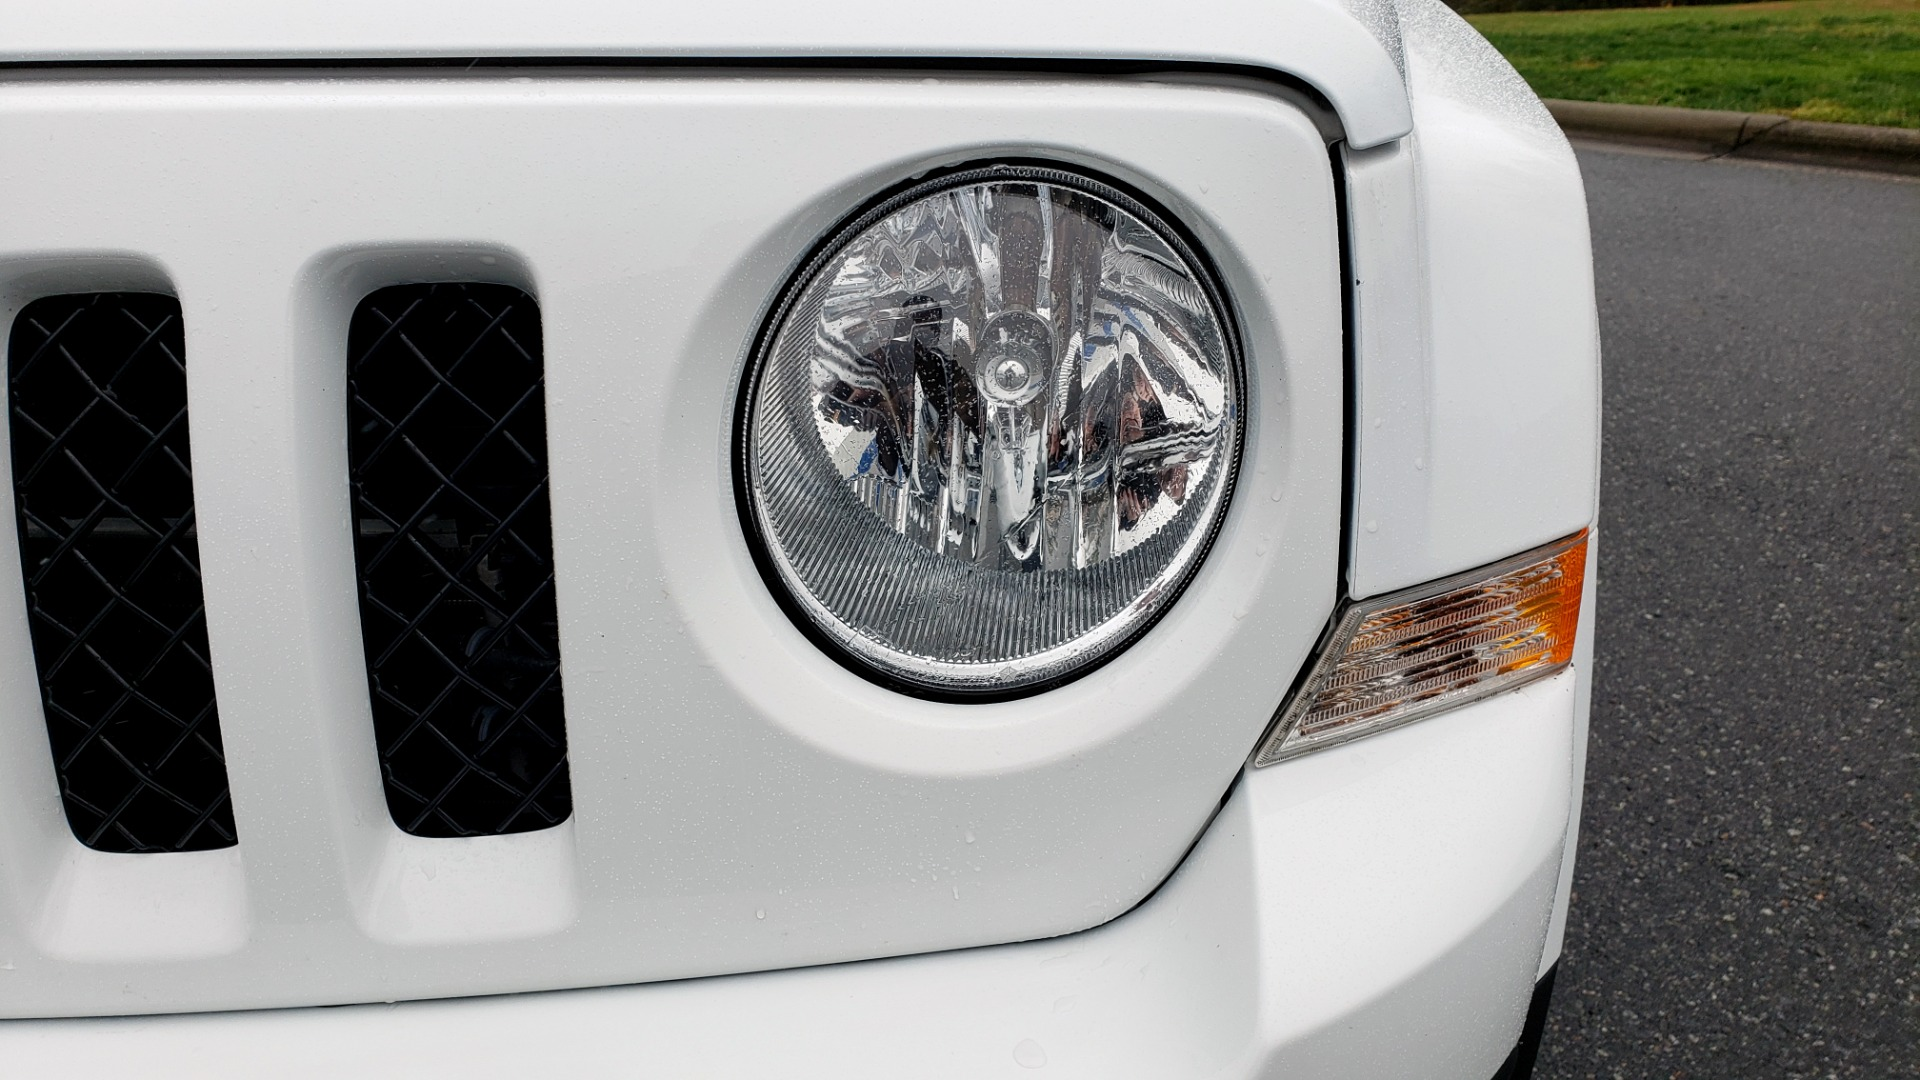 Used 2016 Jeep PATRIOT HIGH ALTITUDE EDITION 4WD / SUNROOF / 4-CYL / 6-SPD AUTO for sale $14,695 at Formula Imports in Charlotte NC 28227 19